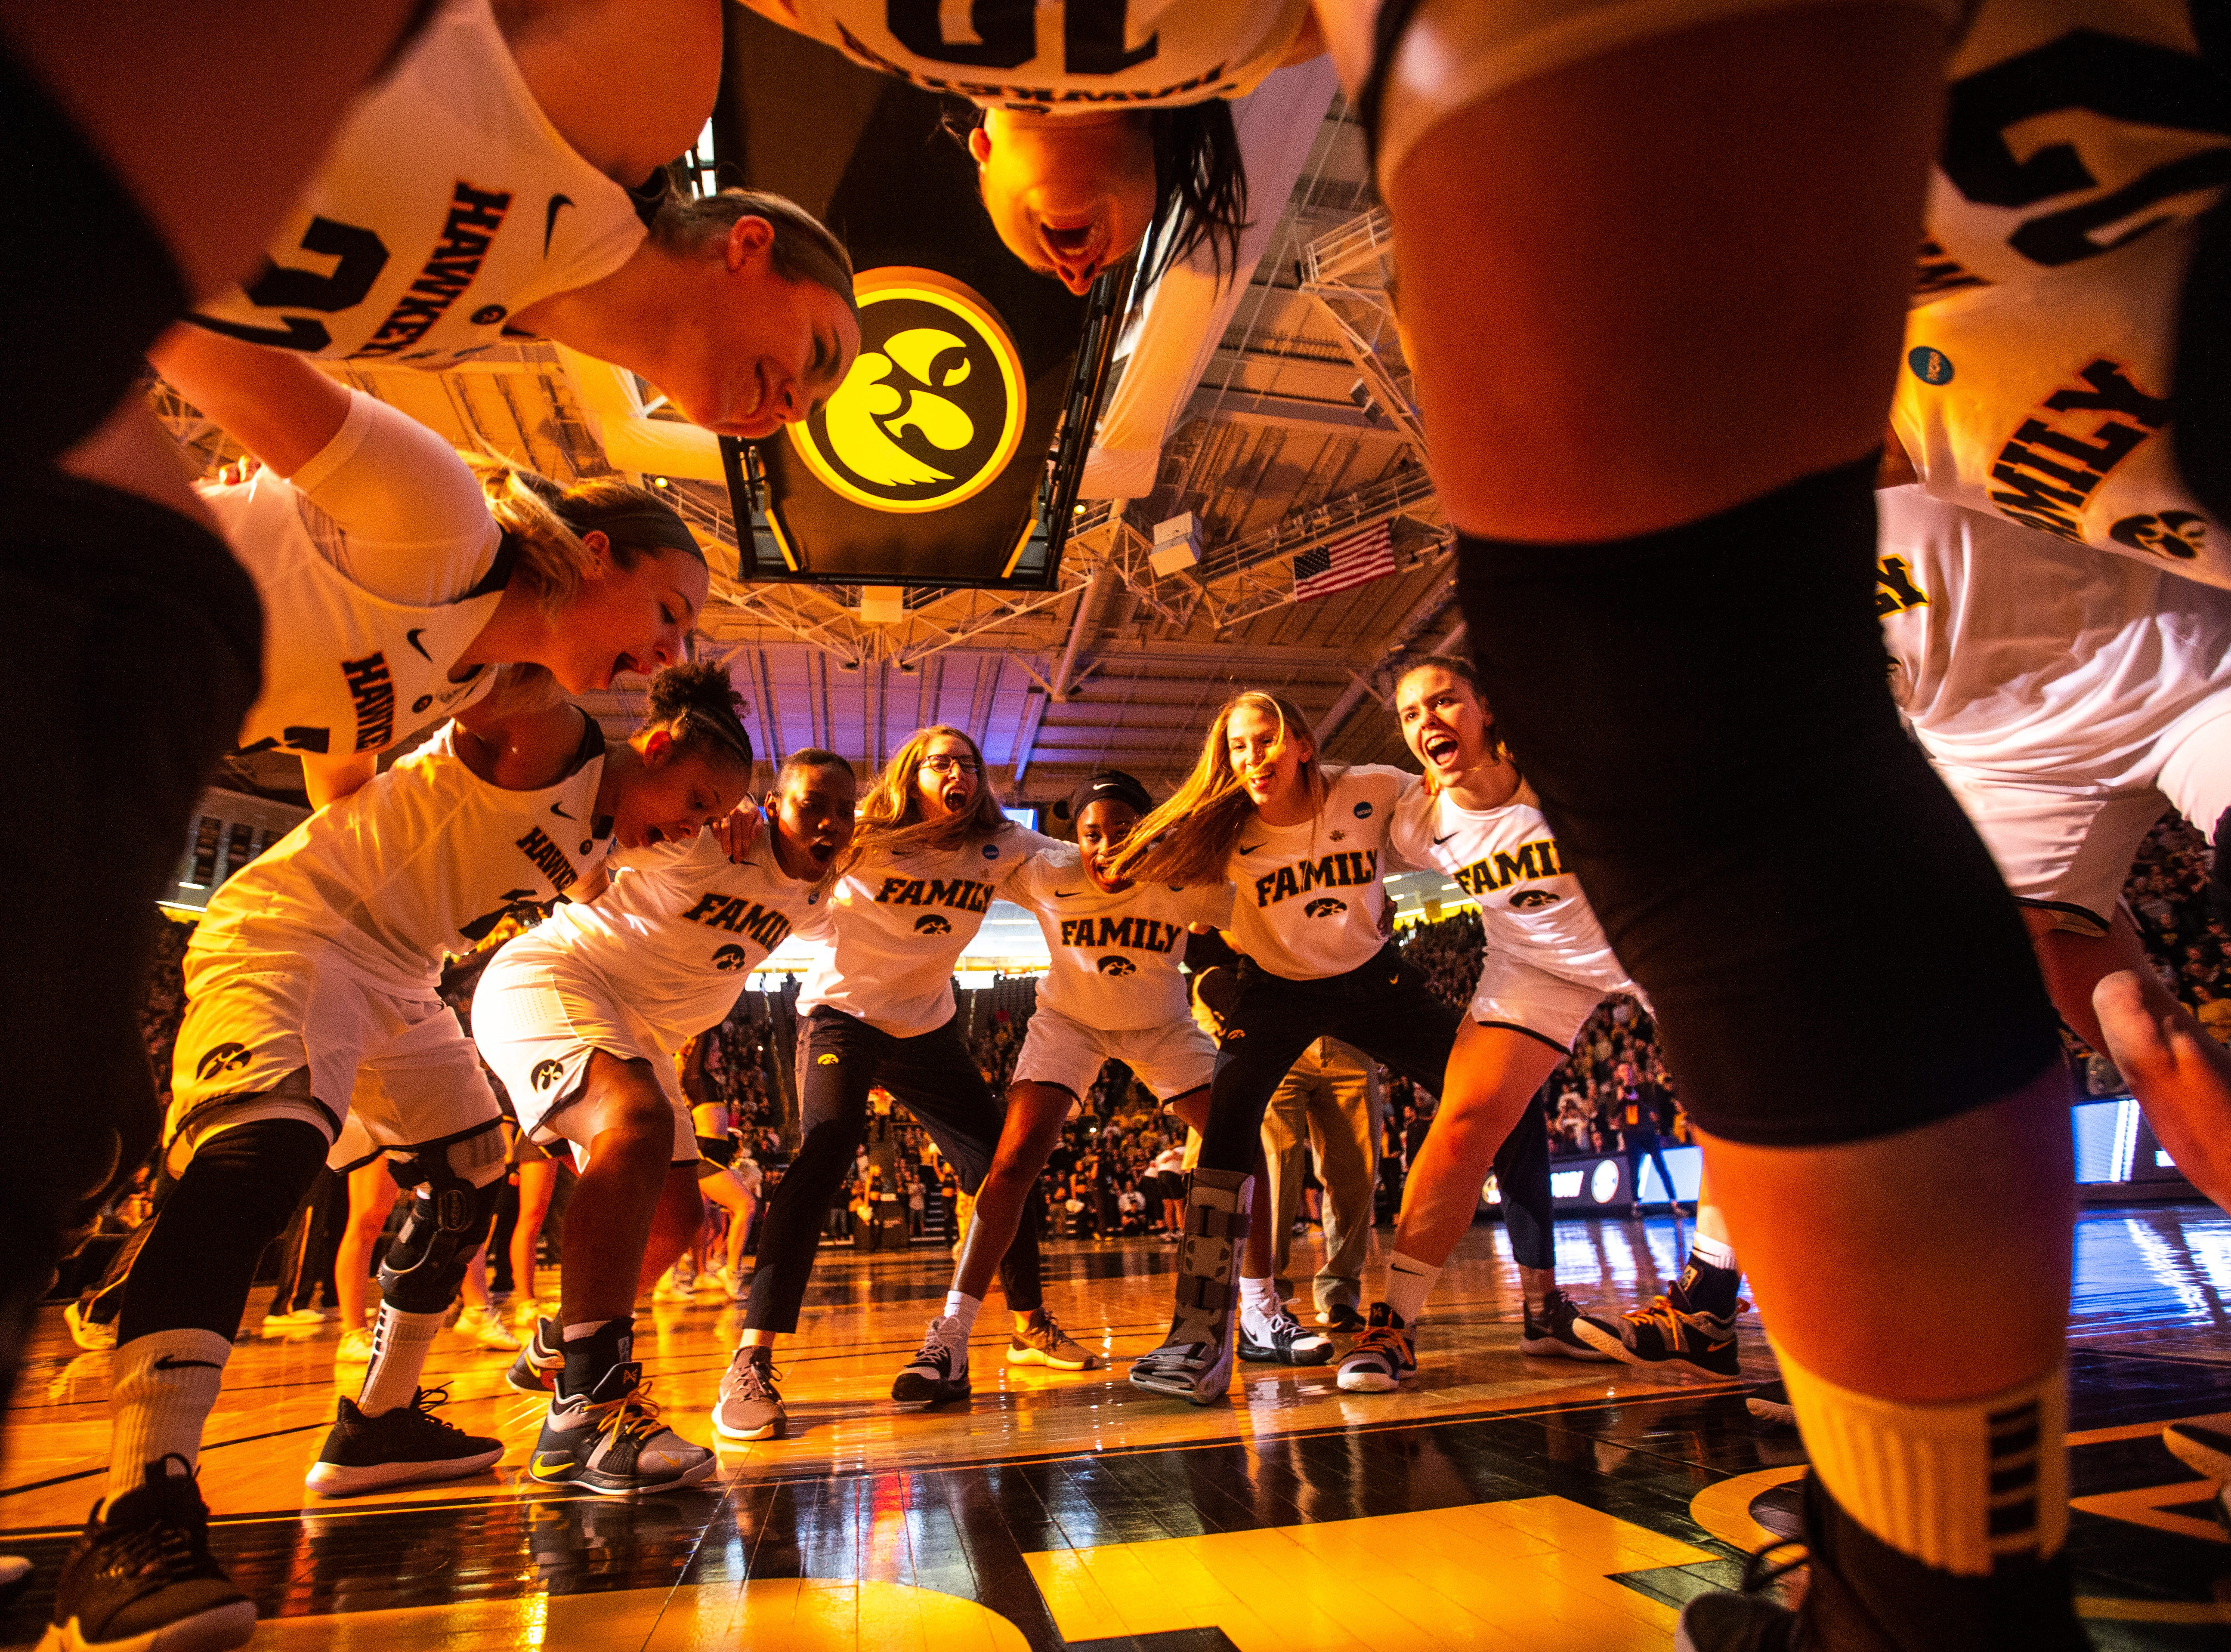 Iowa Hawkeyes, including Iowa center Megan Gustafson (10) huddle up following introductions during a NCAA women's basketball tournament second-round game, Sunday, March 24, 2019, at Carver-Hawkeye Arena in Iowa City, Iowa.